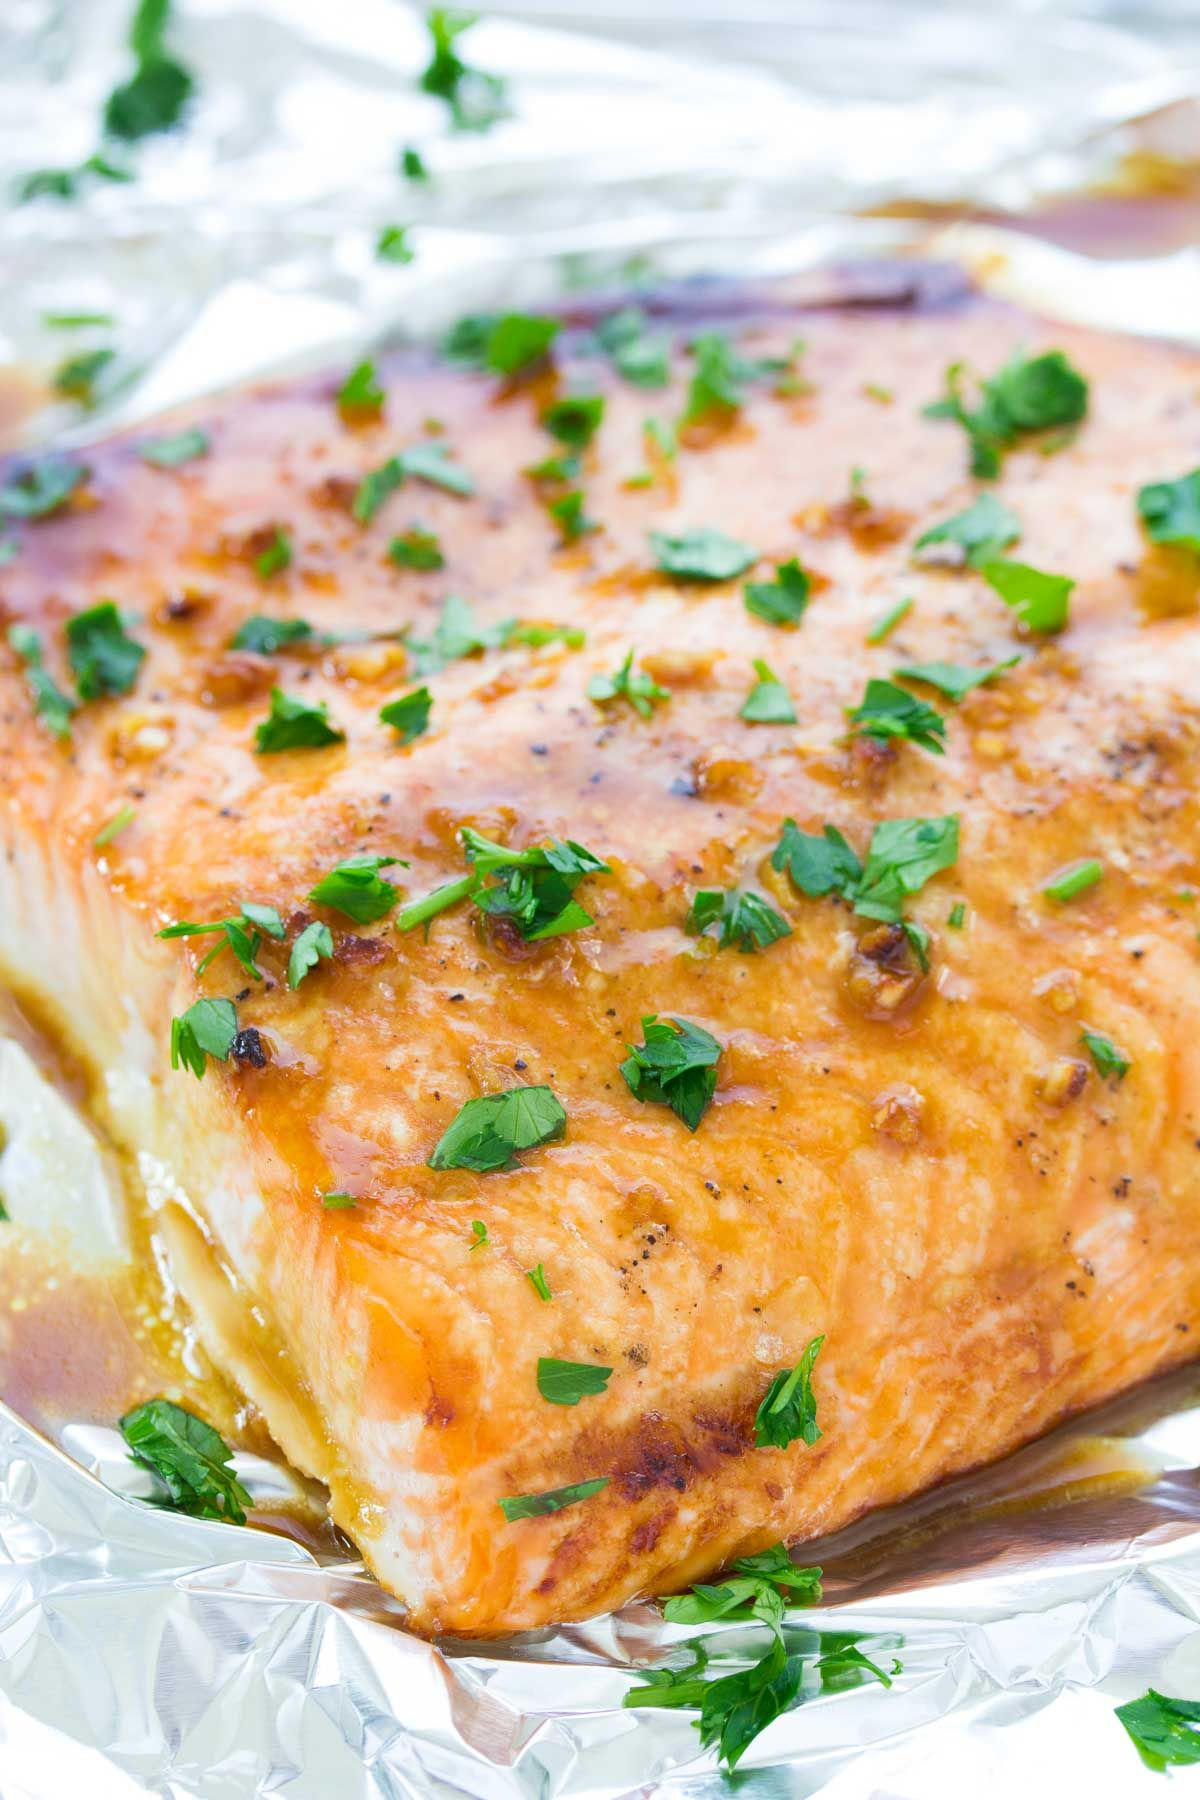 This Easy Oven Baked Salmon Recipe Is Our Favorite With A Honey Dijon And Garlic Sauce And Just Baked Salmon Recipes Oven Baked Salmon Recipes Salmon Recipes